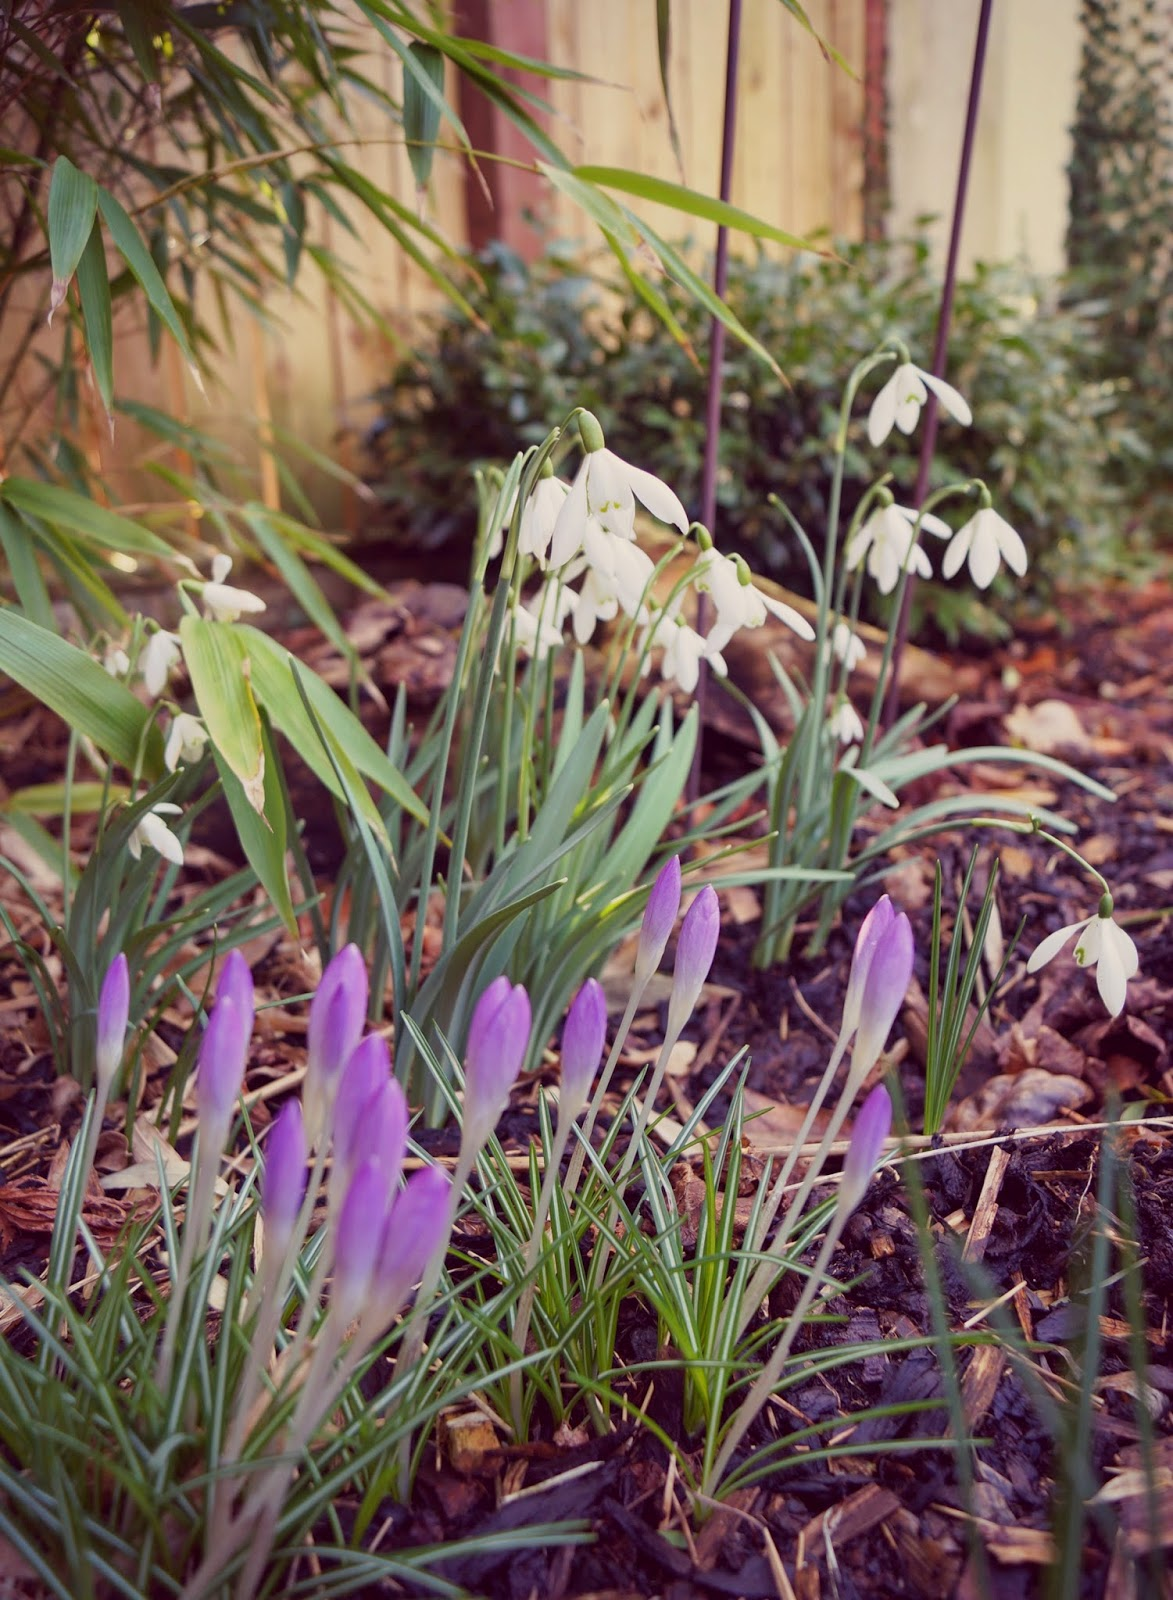 Snowdrops and Crocuses - 'Grow Our Own' Allotment blog